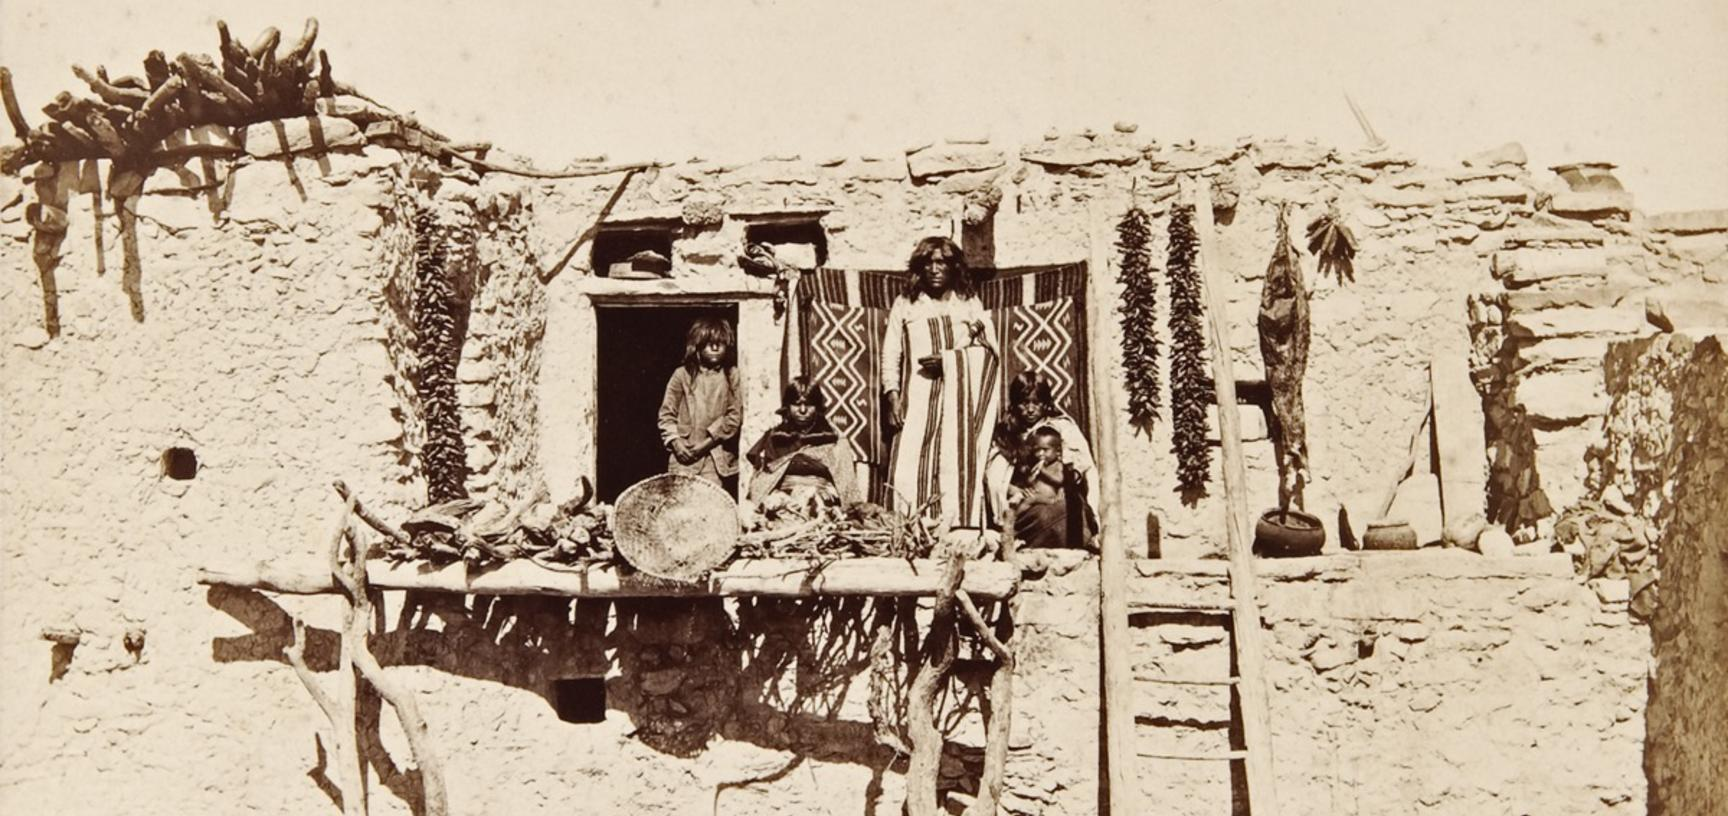 Totci and his family, gathered on a wooden platform in front of their house, with a blanket hanging and crops drying on a wall behind them.